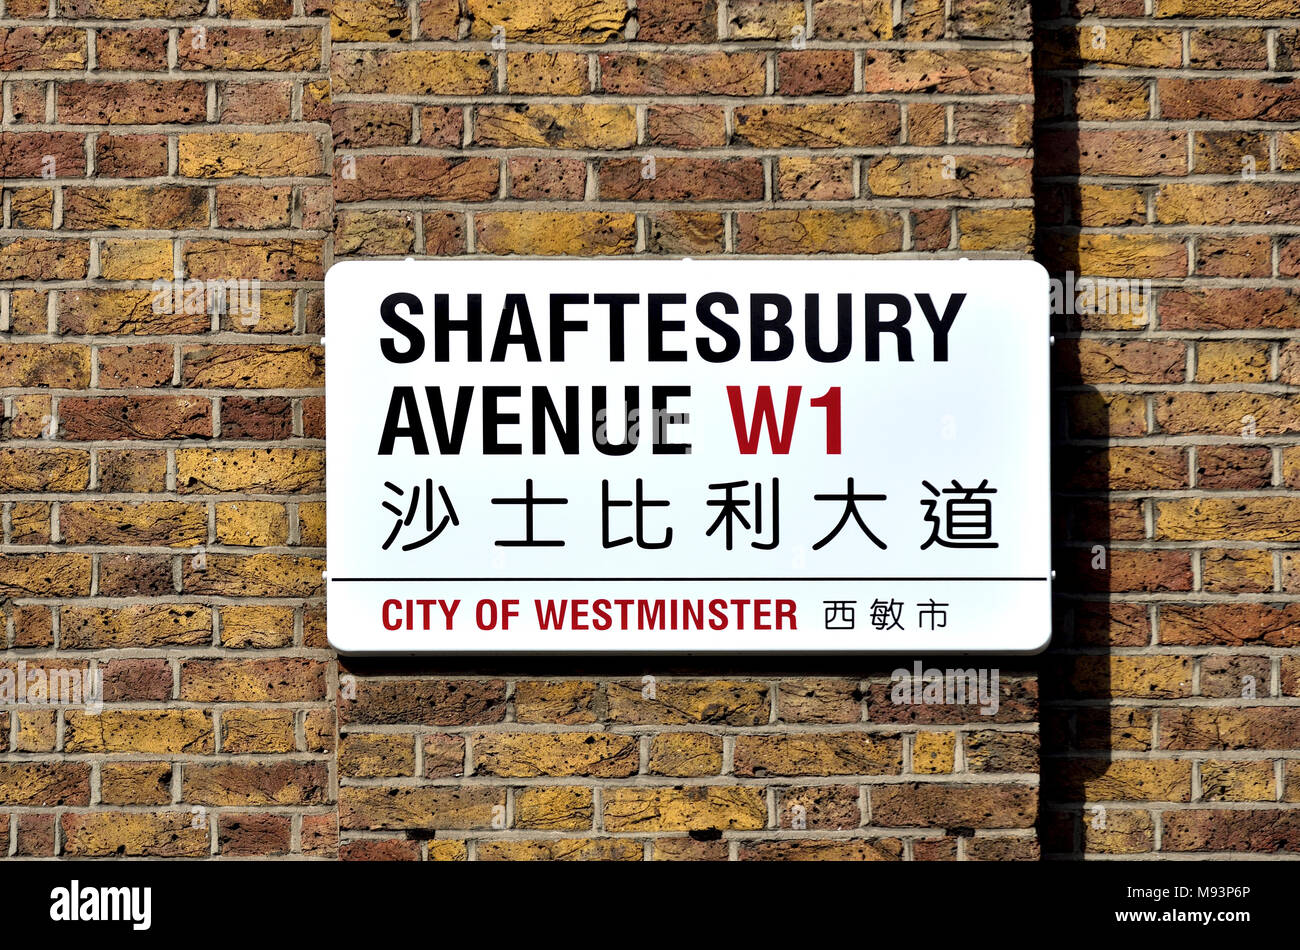 London, England, UK. Shaftesbury Avenue bilingual street sign in Chinatown - in English and Chinese - Stock Image